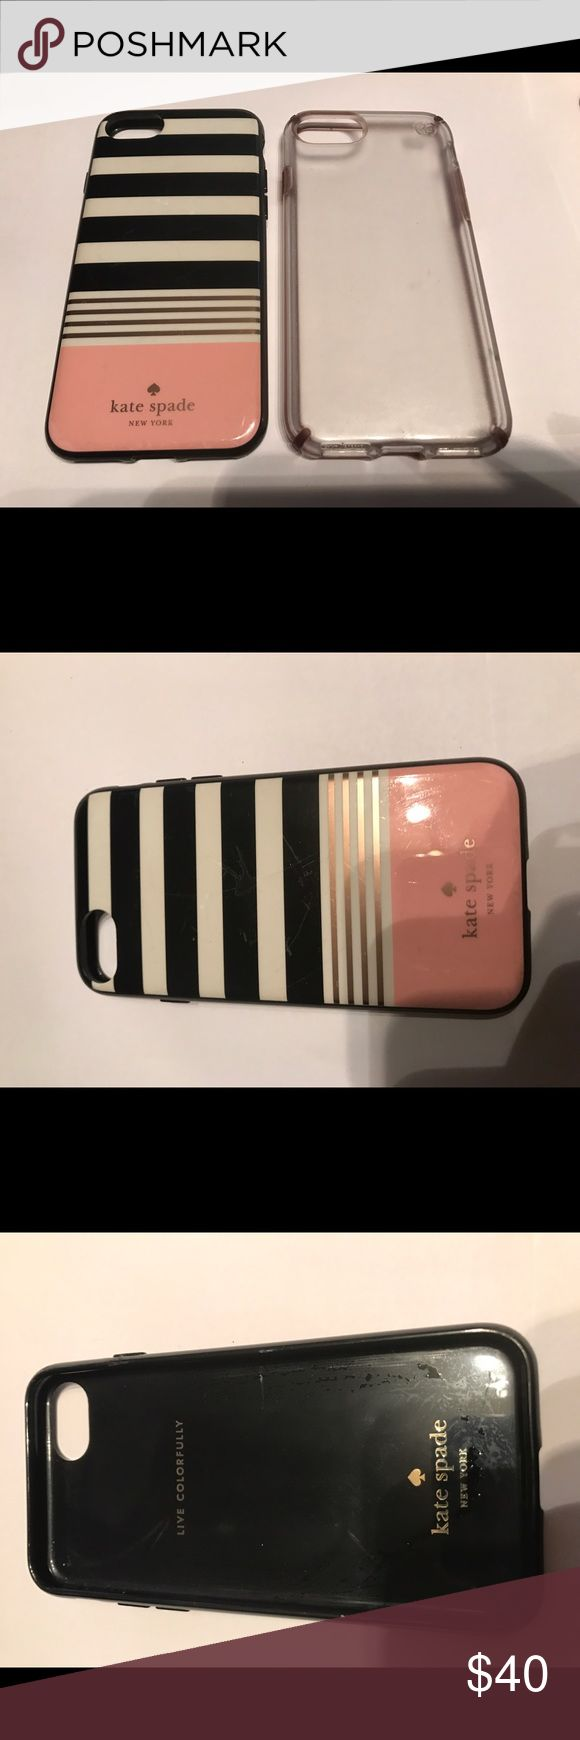 BUNDLE of iPhone 7 cases You get two for the price of one kate spade Accessories Phone Cases